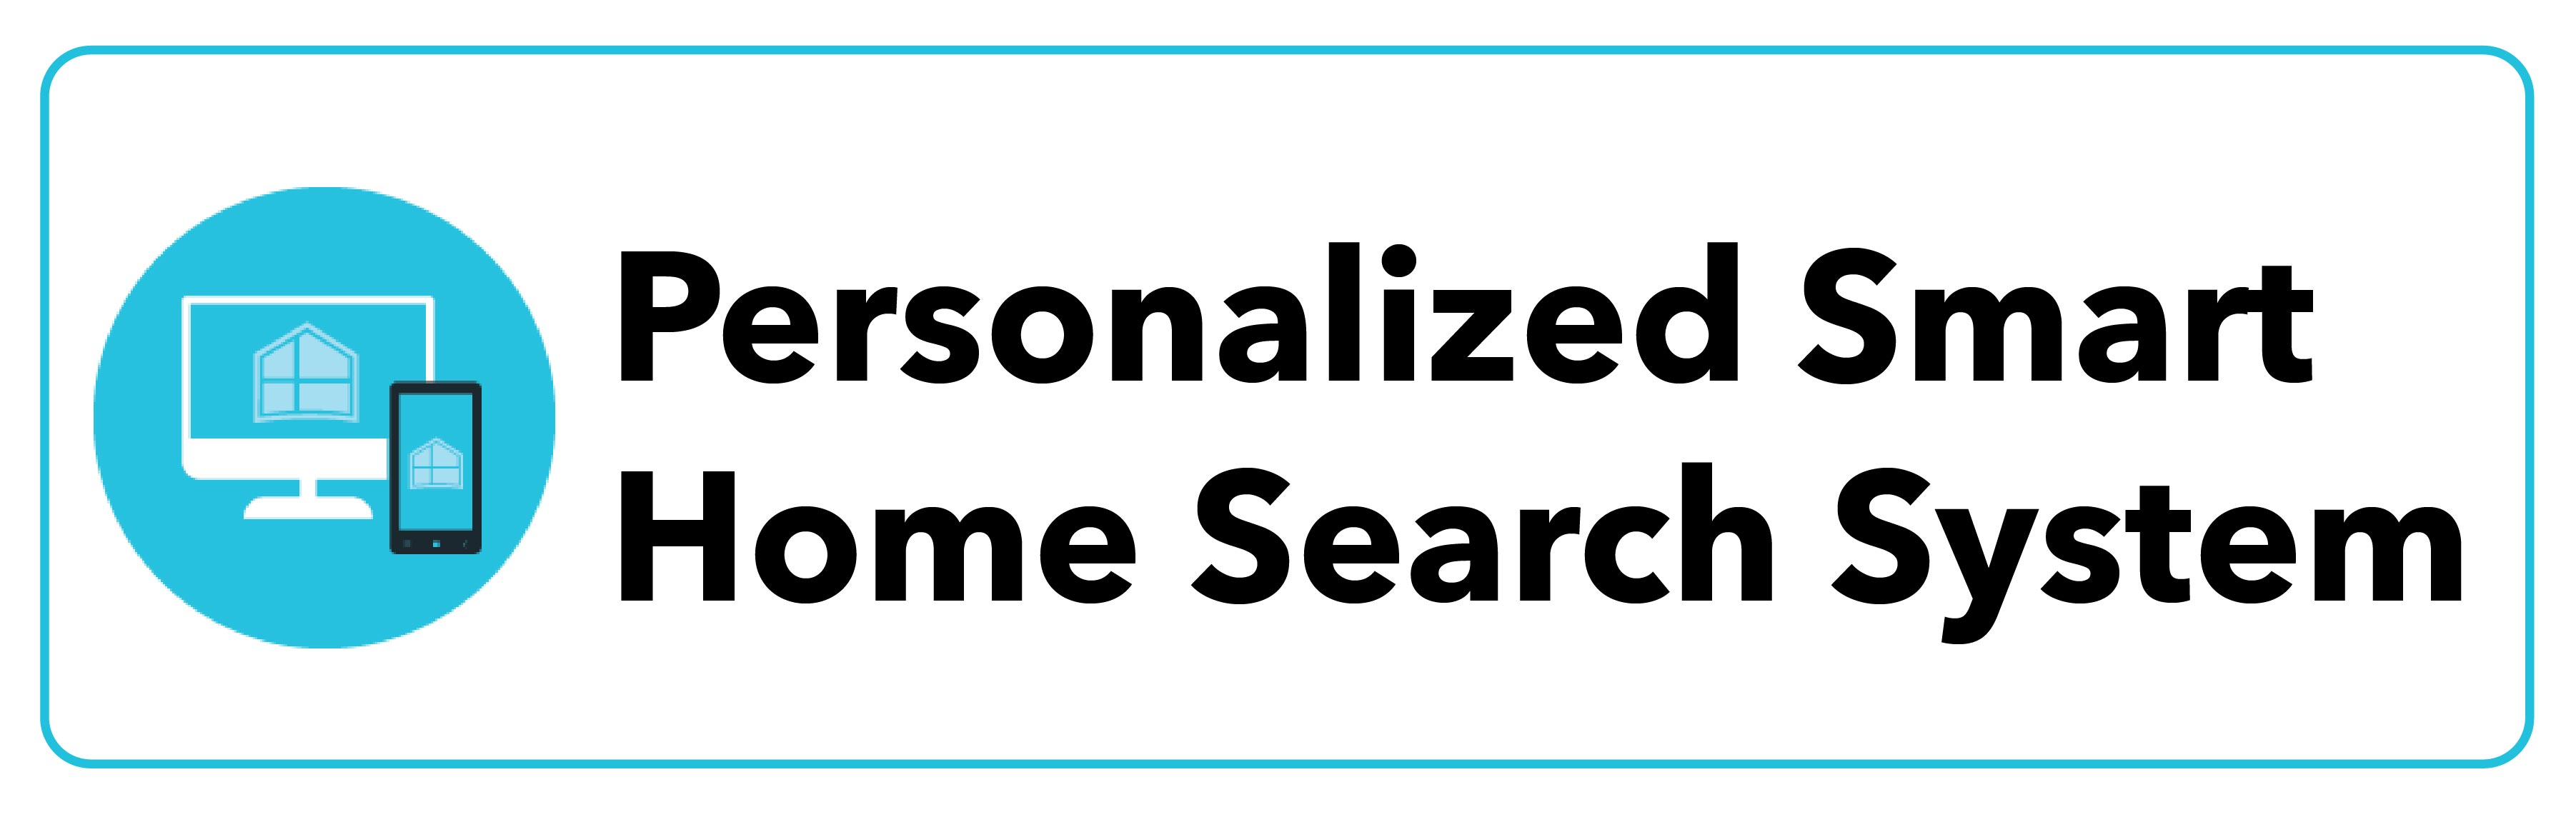 Personalized Smart Home Search System